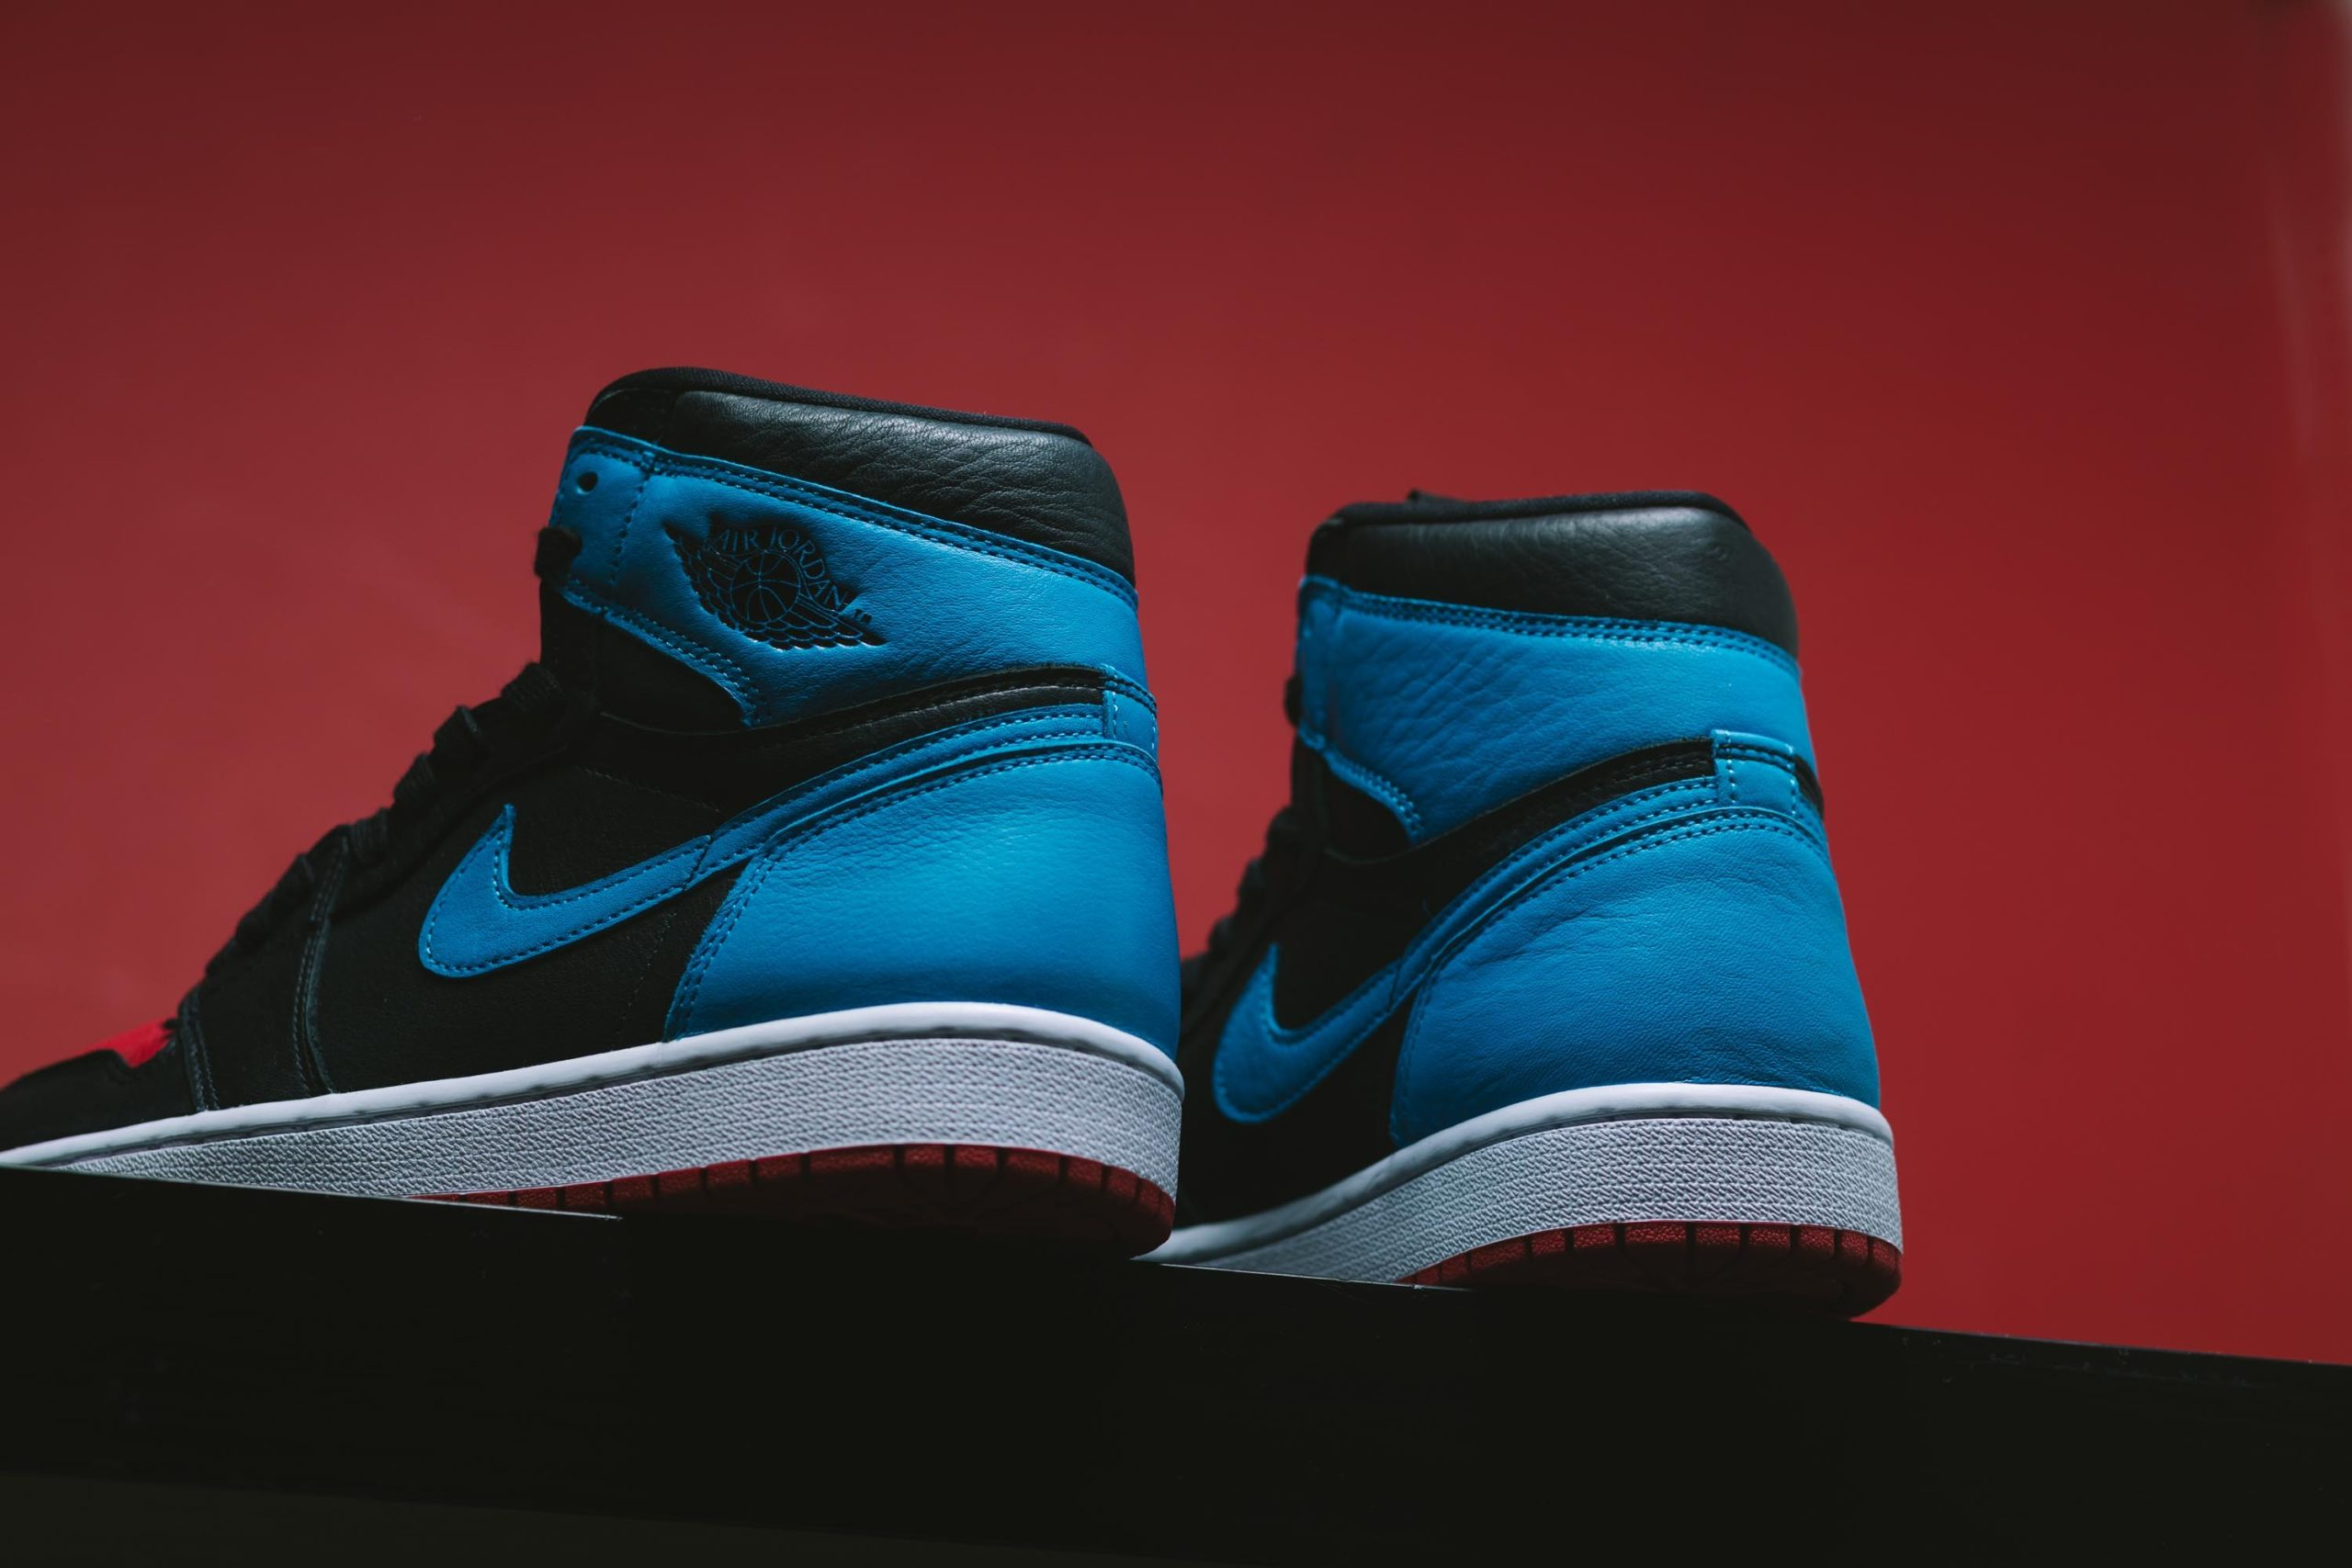 WMNS AIR JORDAN 1 POWDER BLUE/GYM RED